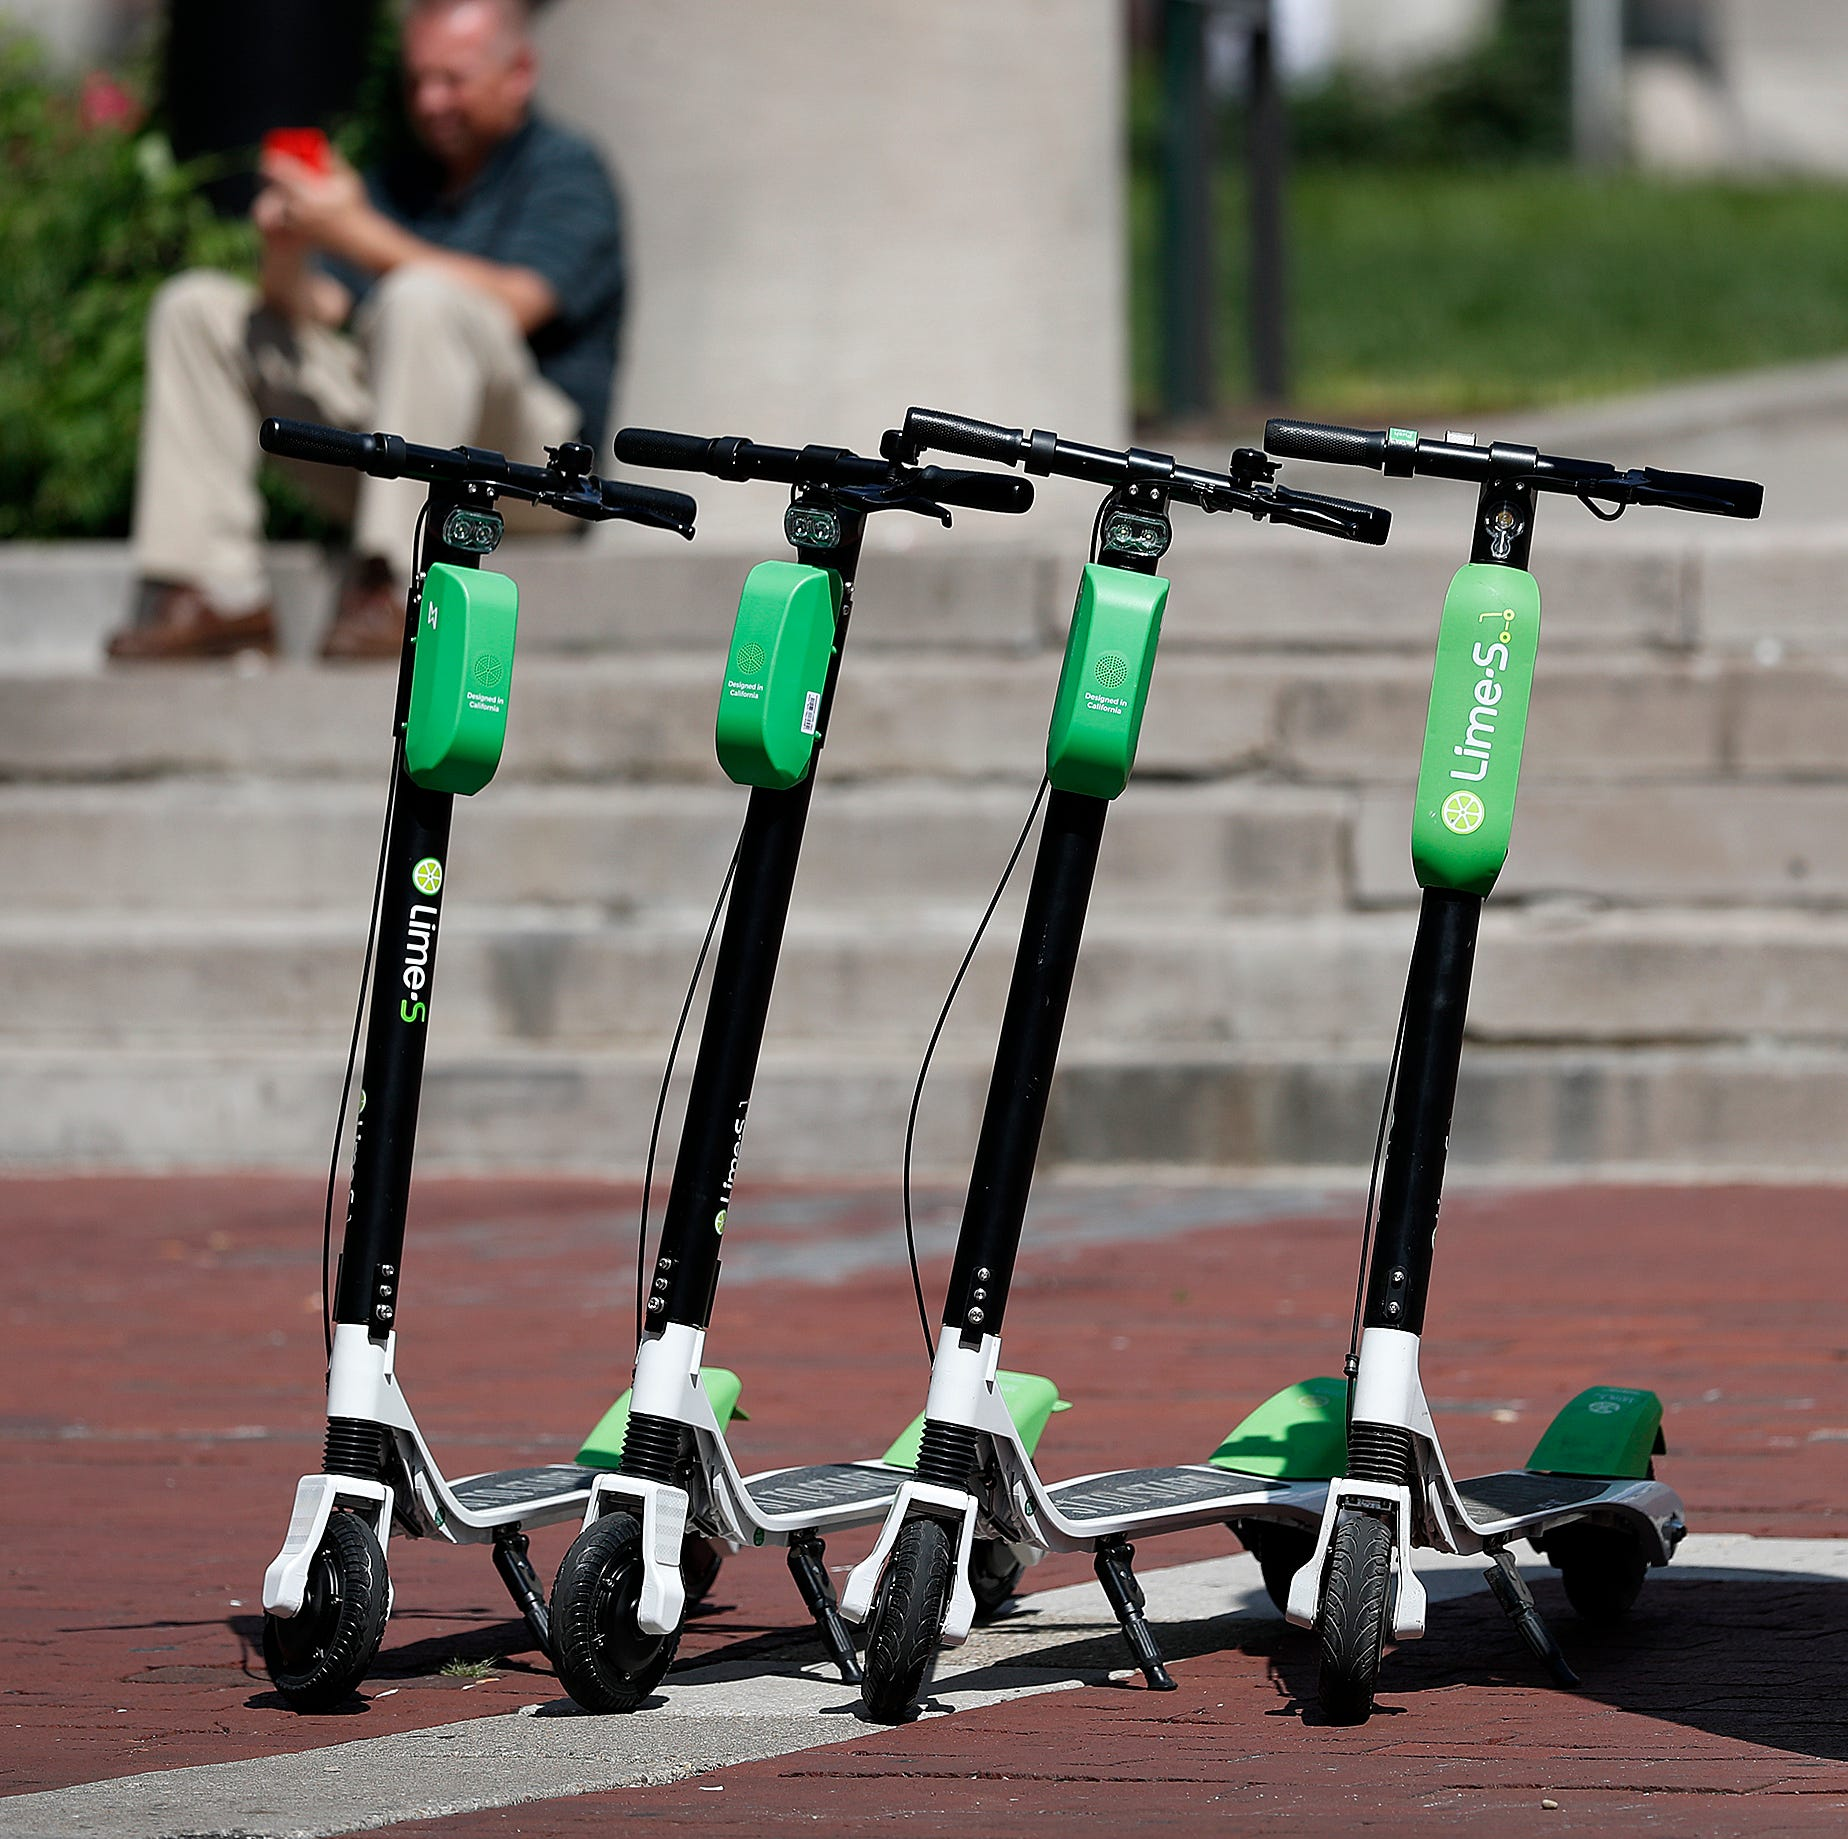 Lime investigating scooters that could break apart during rides